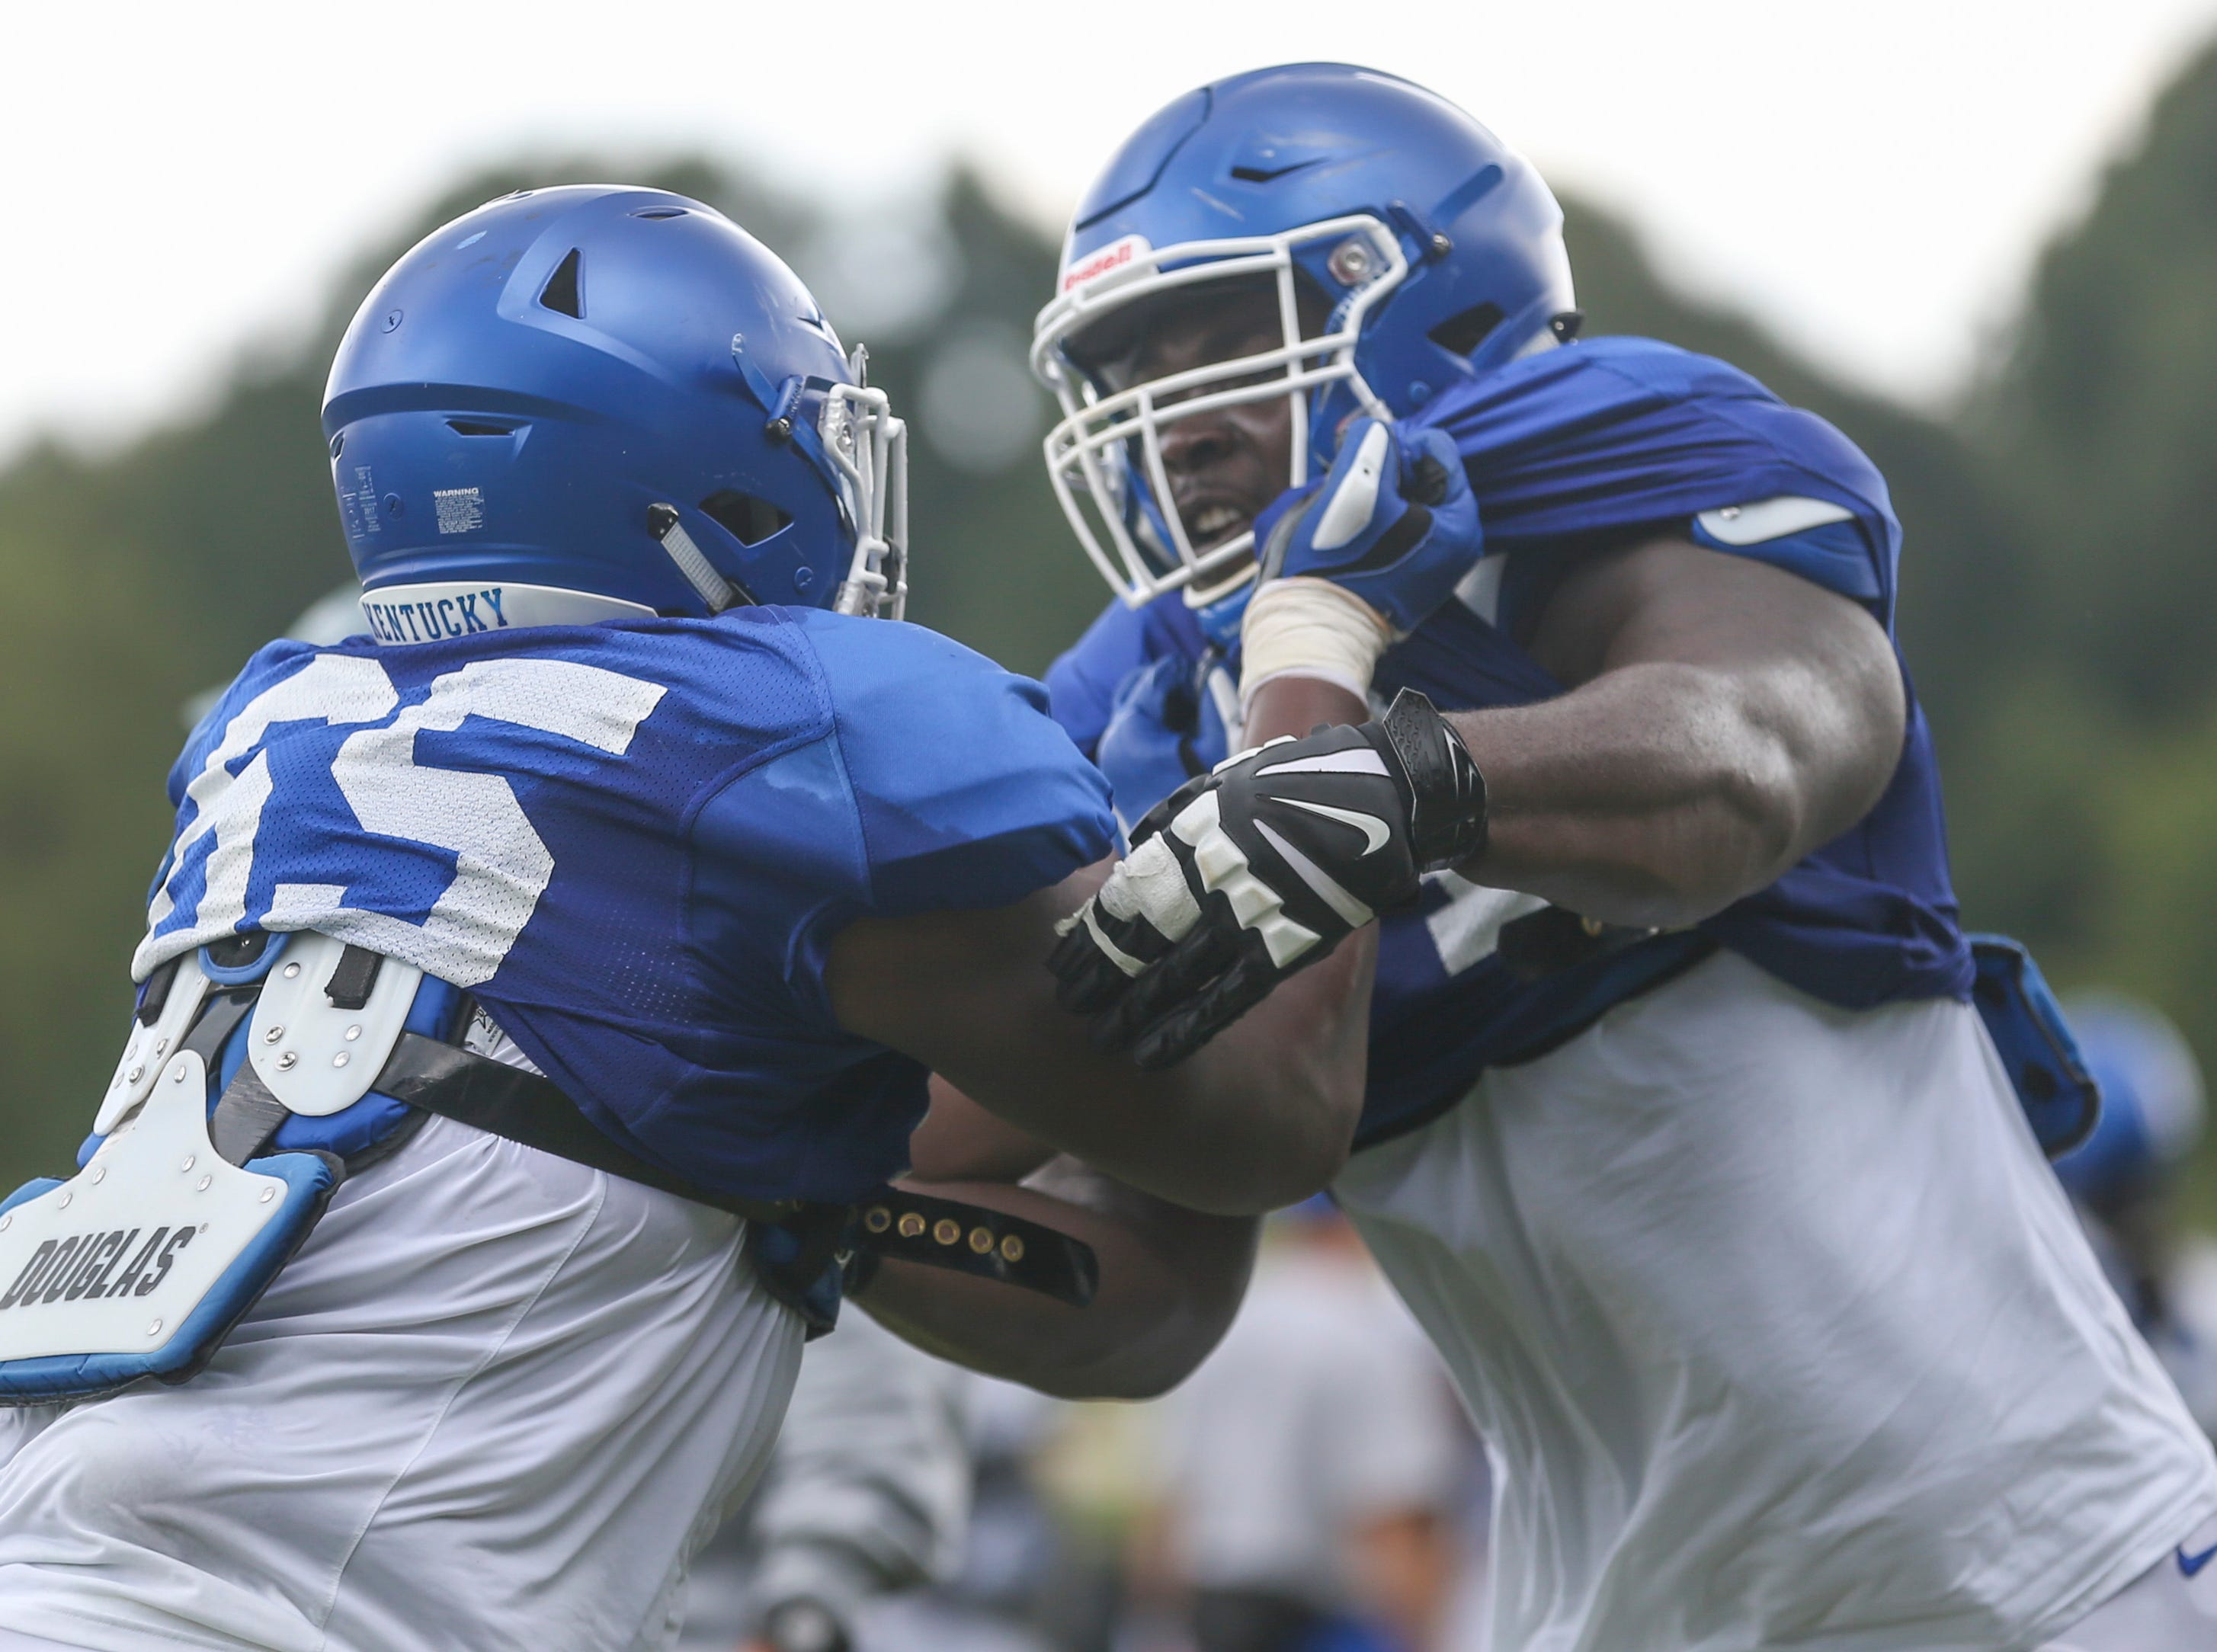 UK offensive guard George Asafo-Ajei, right, pushes back on Bunchy Stallings during a blocking drill at a recent practice. The Wildcats open the season with a home game against Central Michigan Sept. 1 at 3:30 p.m.